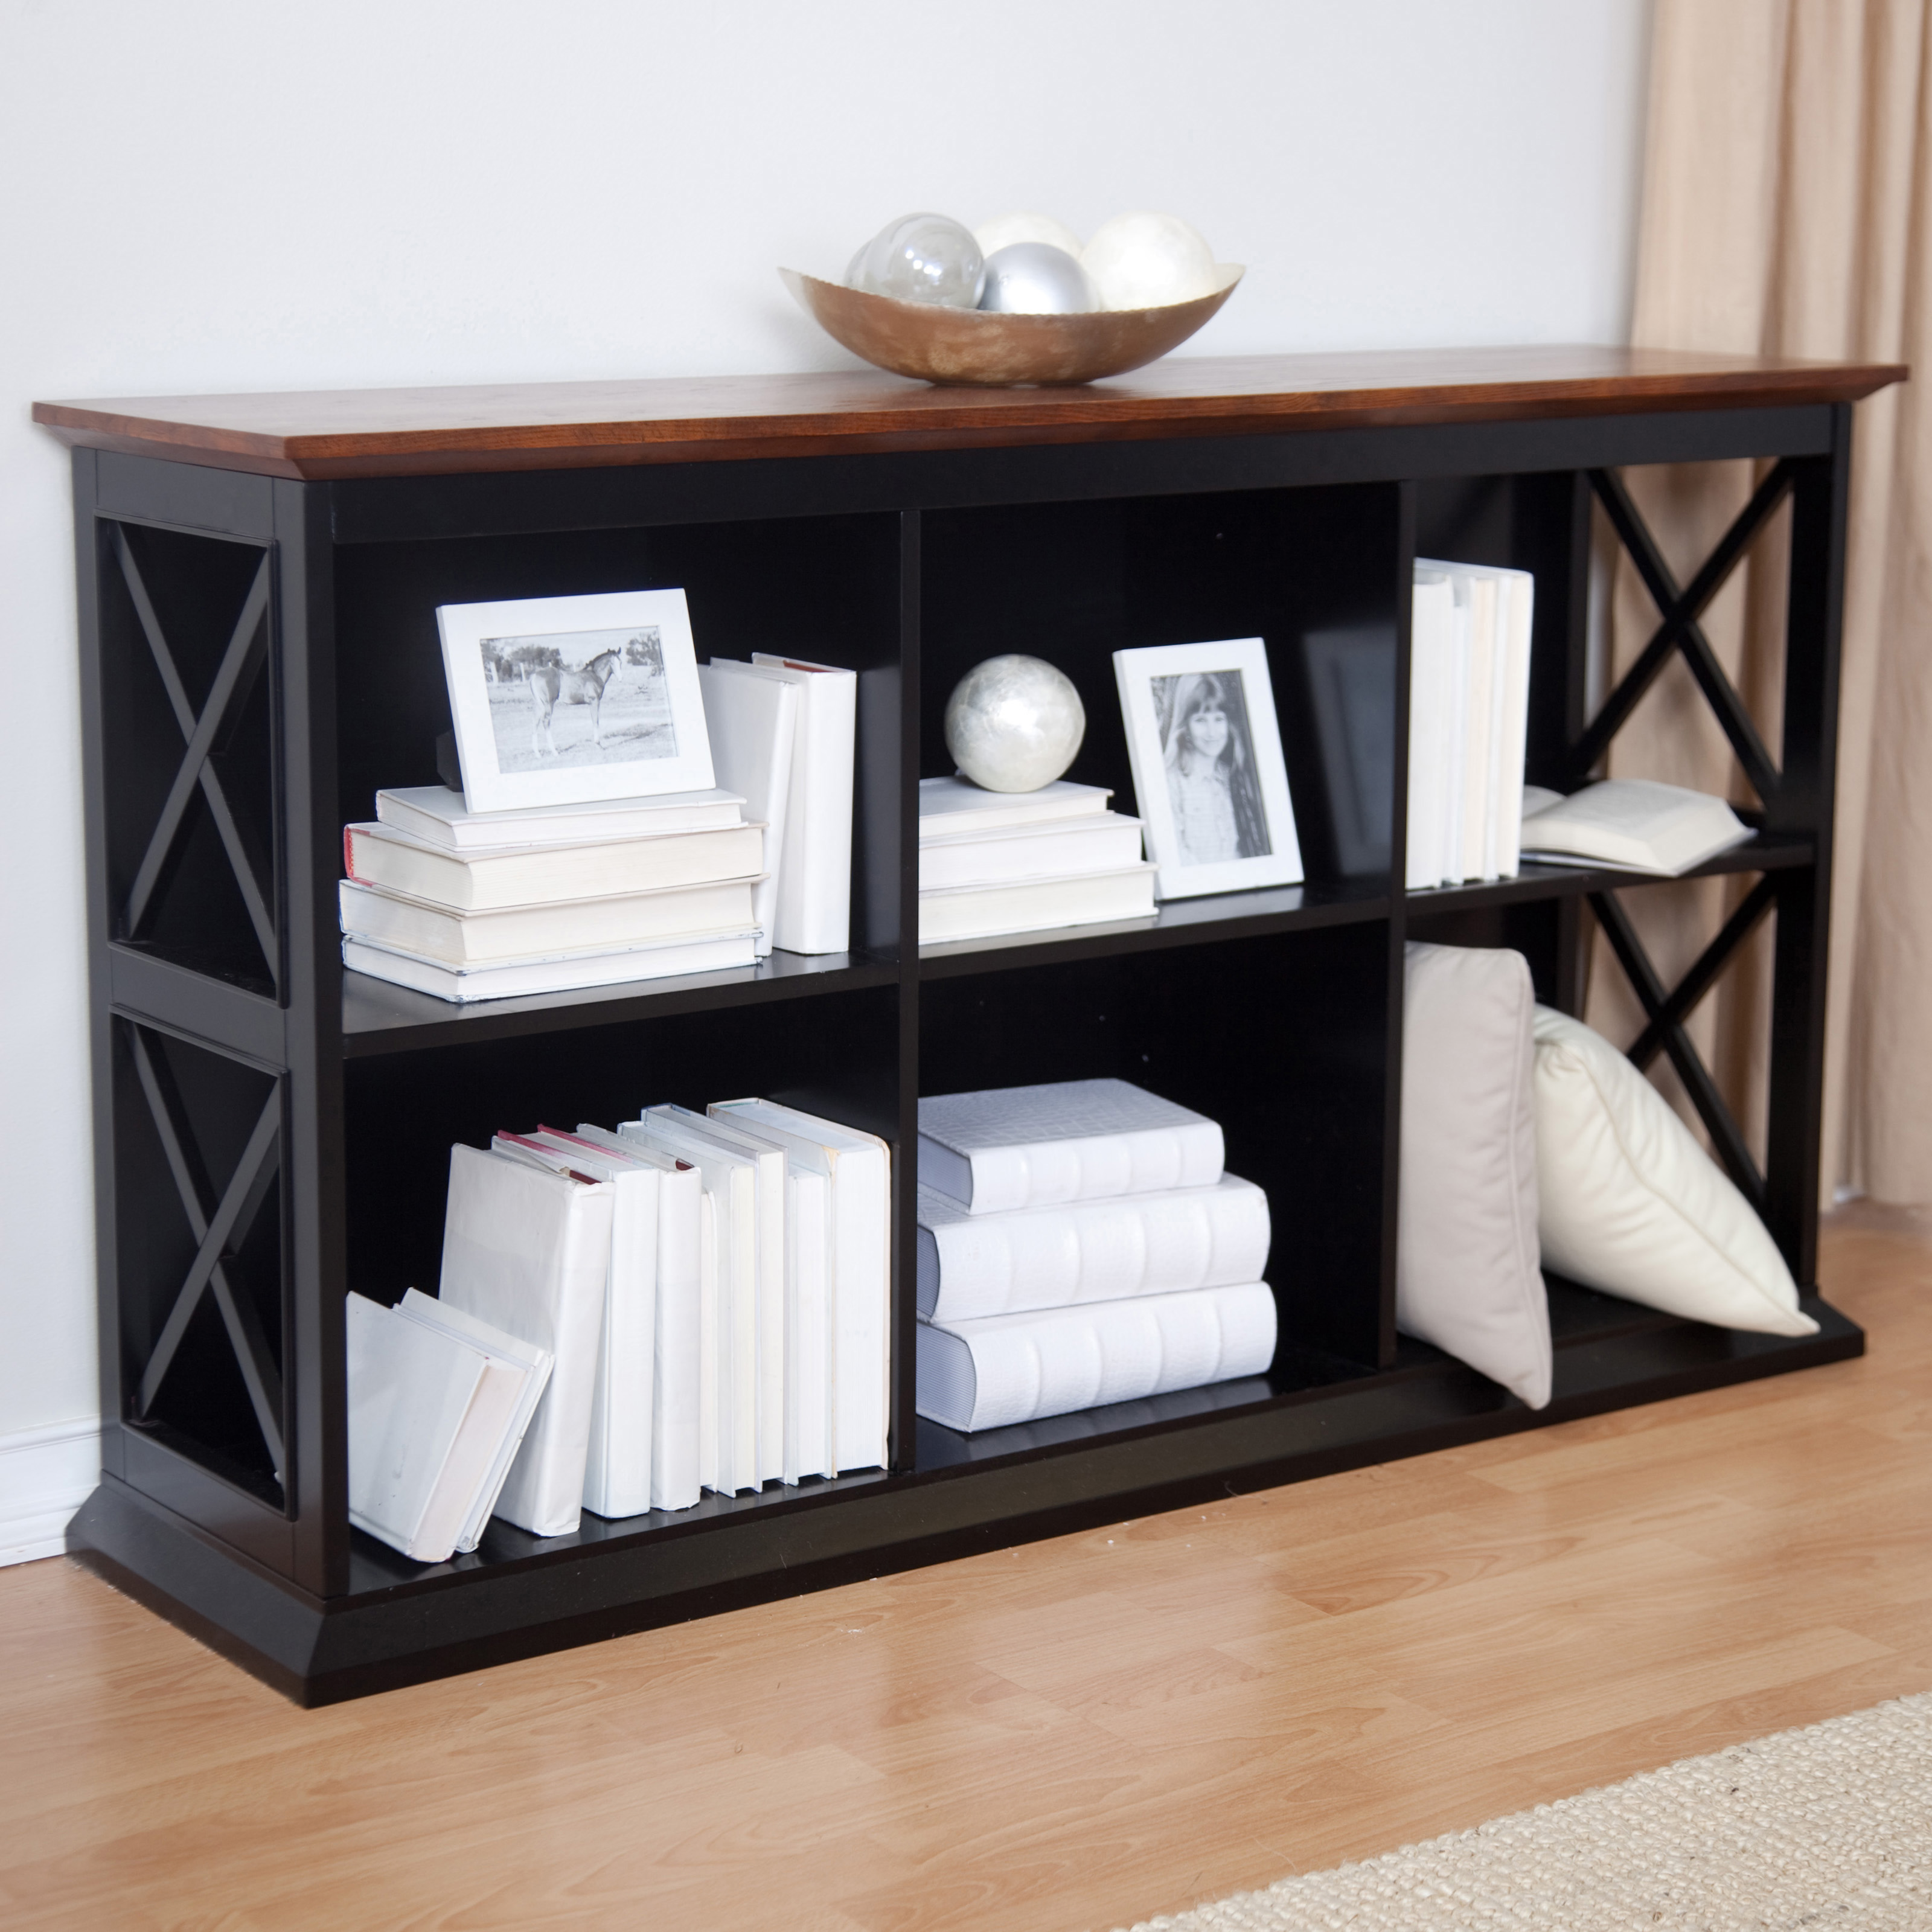 for shelf bookcase two or id basic to little nothing